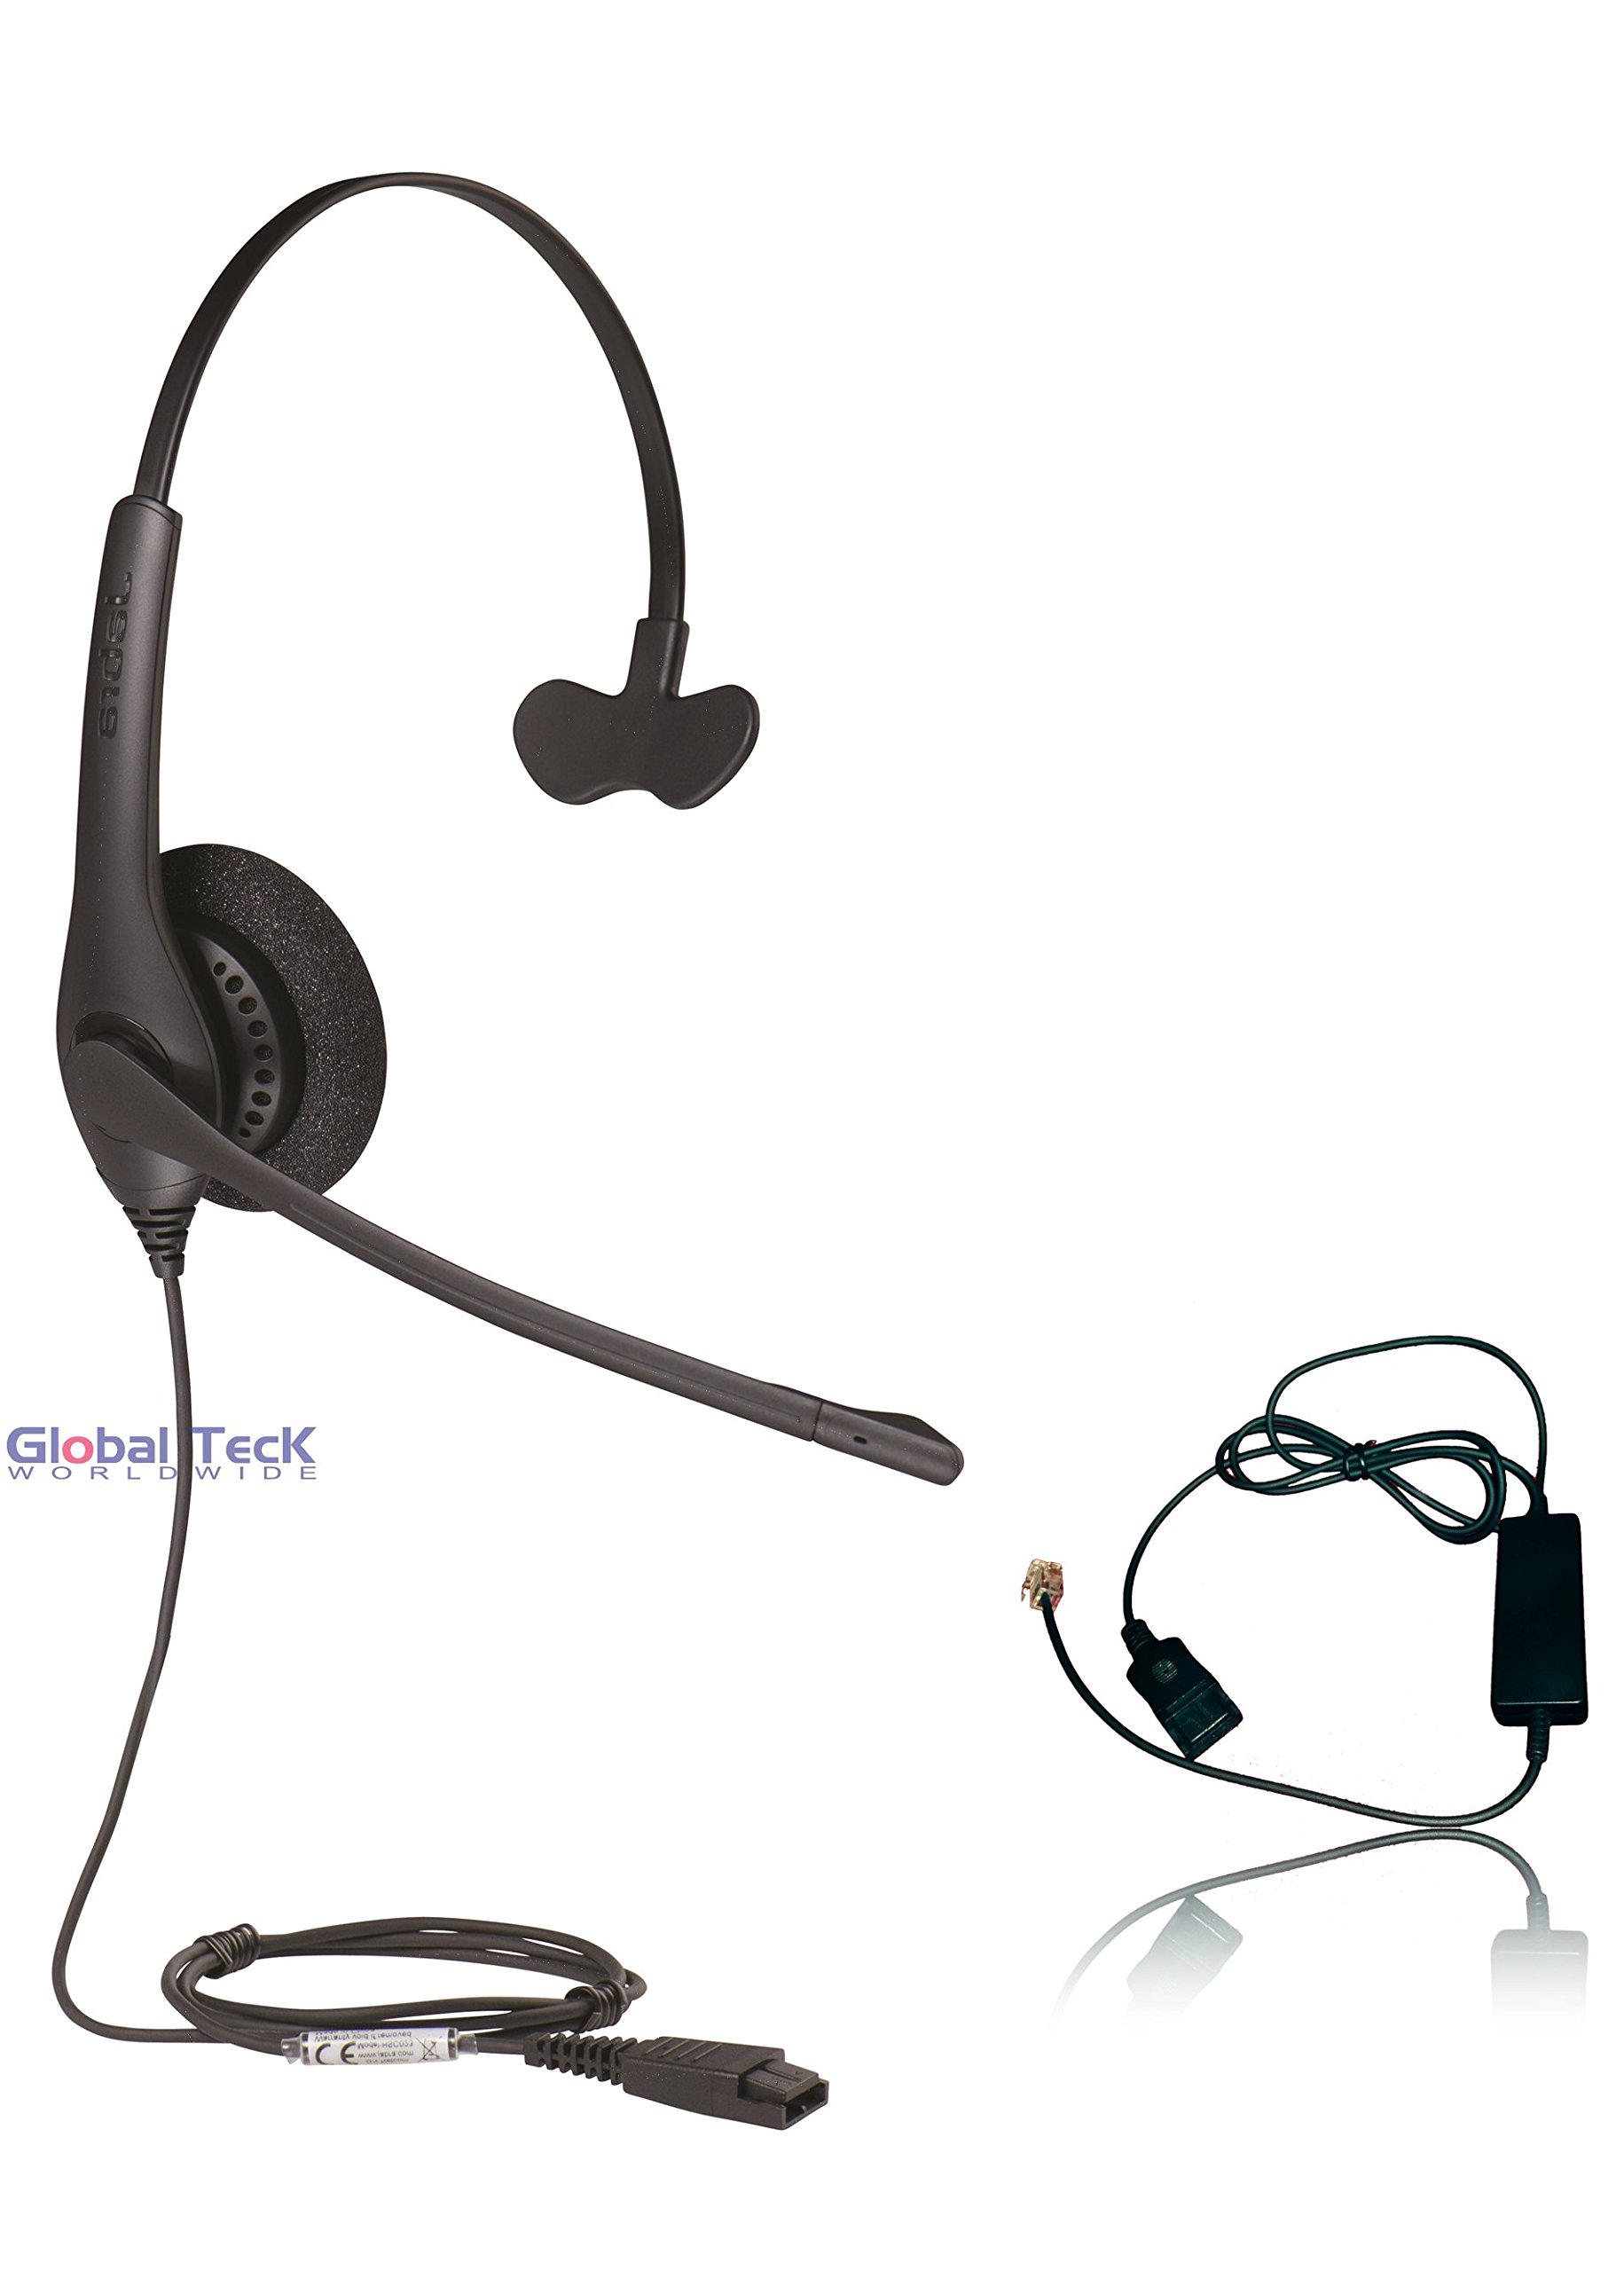 Polycom Compatible Jabra BIZ 1520 Direct Connect Headset with Smart cord | SoundPoint Phones: IP450, IP50's, IP601, IP650, IP670, VVX300's, VVX400's, VVX500, VVX600, VVX1500, CX300, CX600 by Global Teck